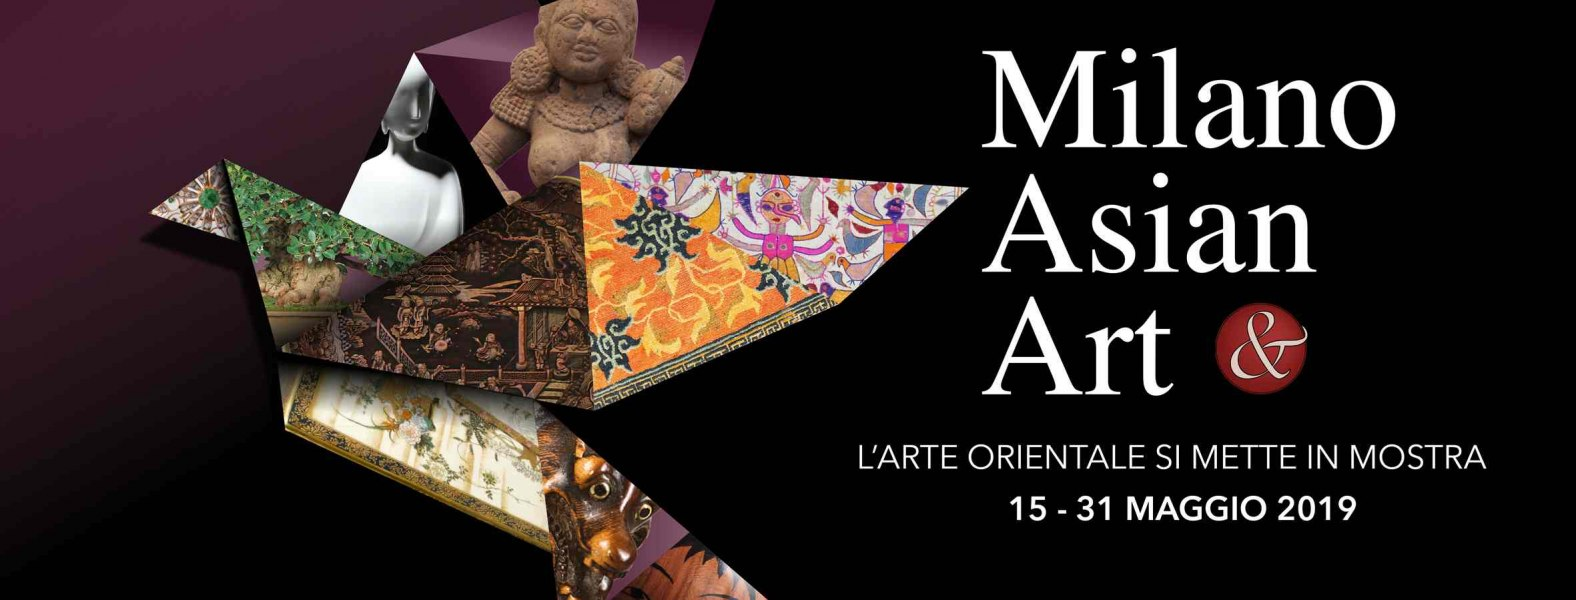 Milano Asian Art 2019